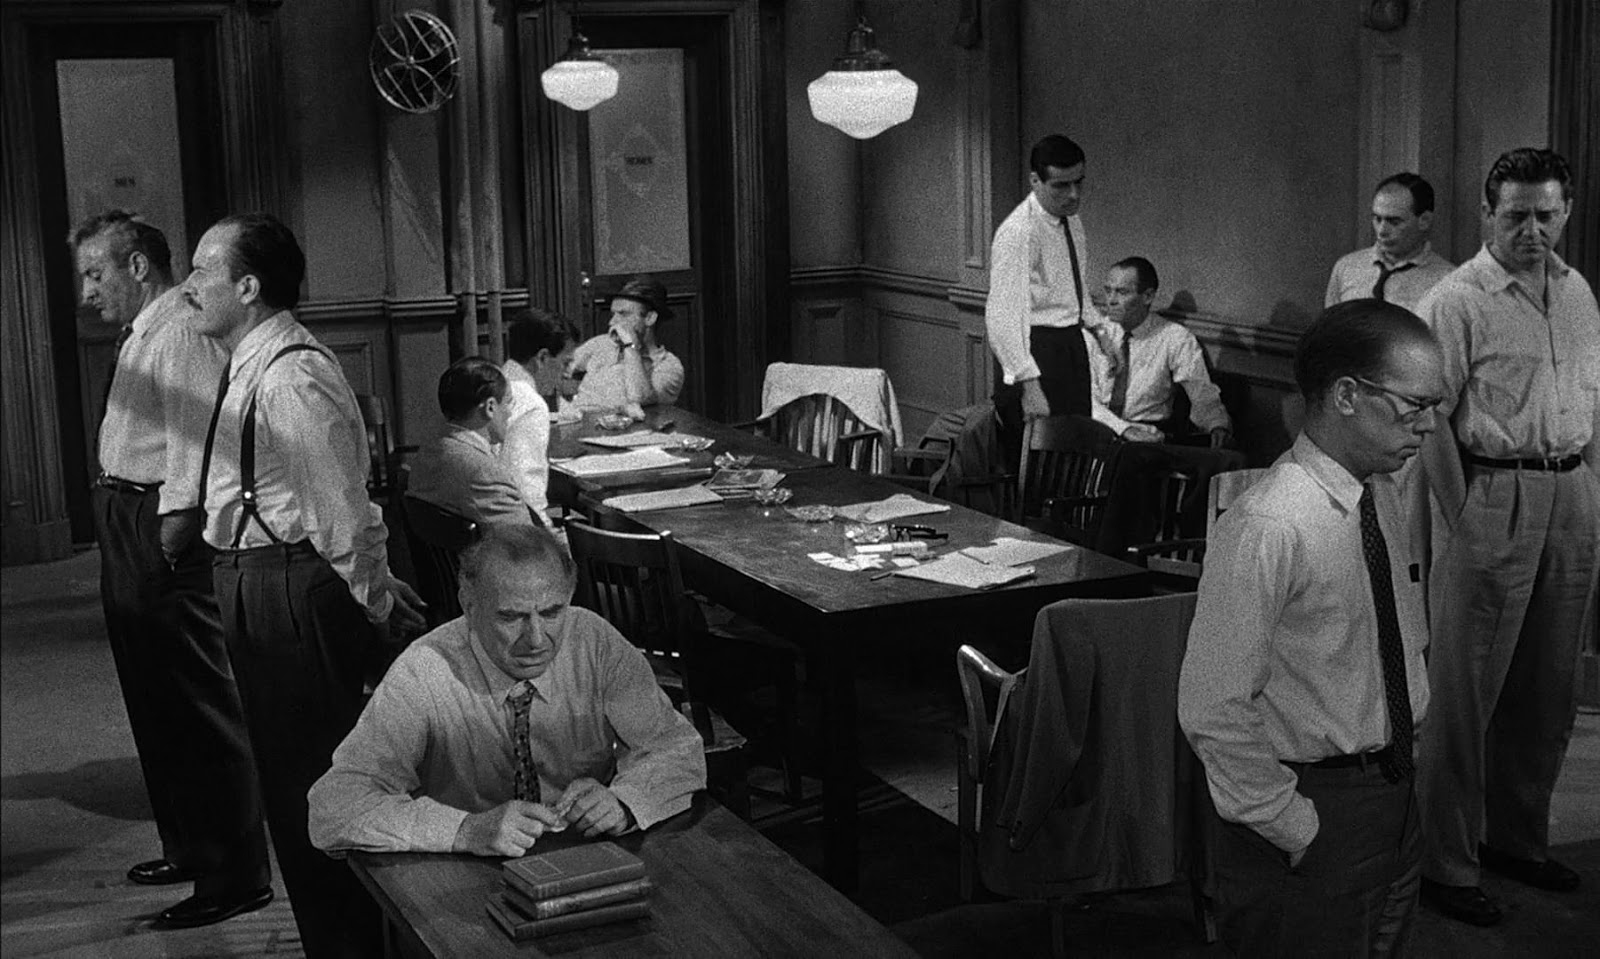 twelve angry men belbin 9pm the four just men  thus the twelve worst, really bad boys, should weigh 109stones, but only weigh 86^ stones  showing a deficiency of21 per cent.